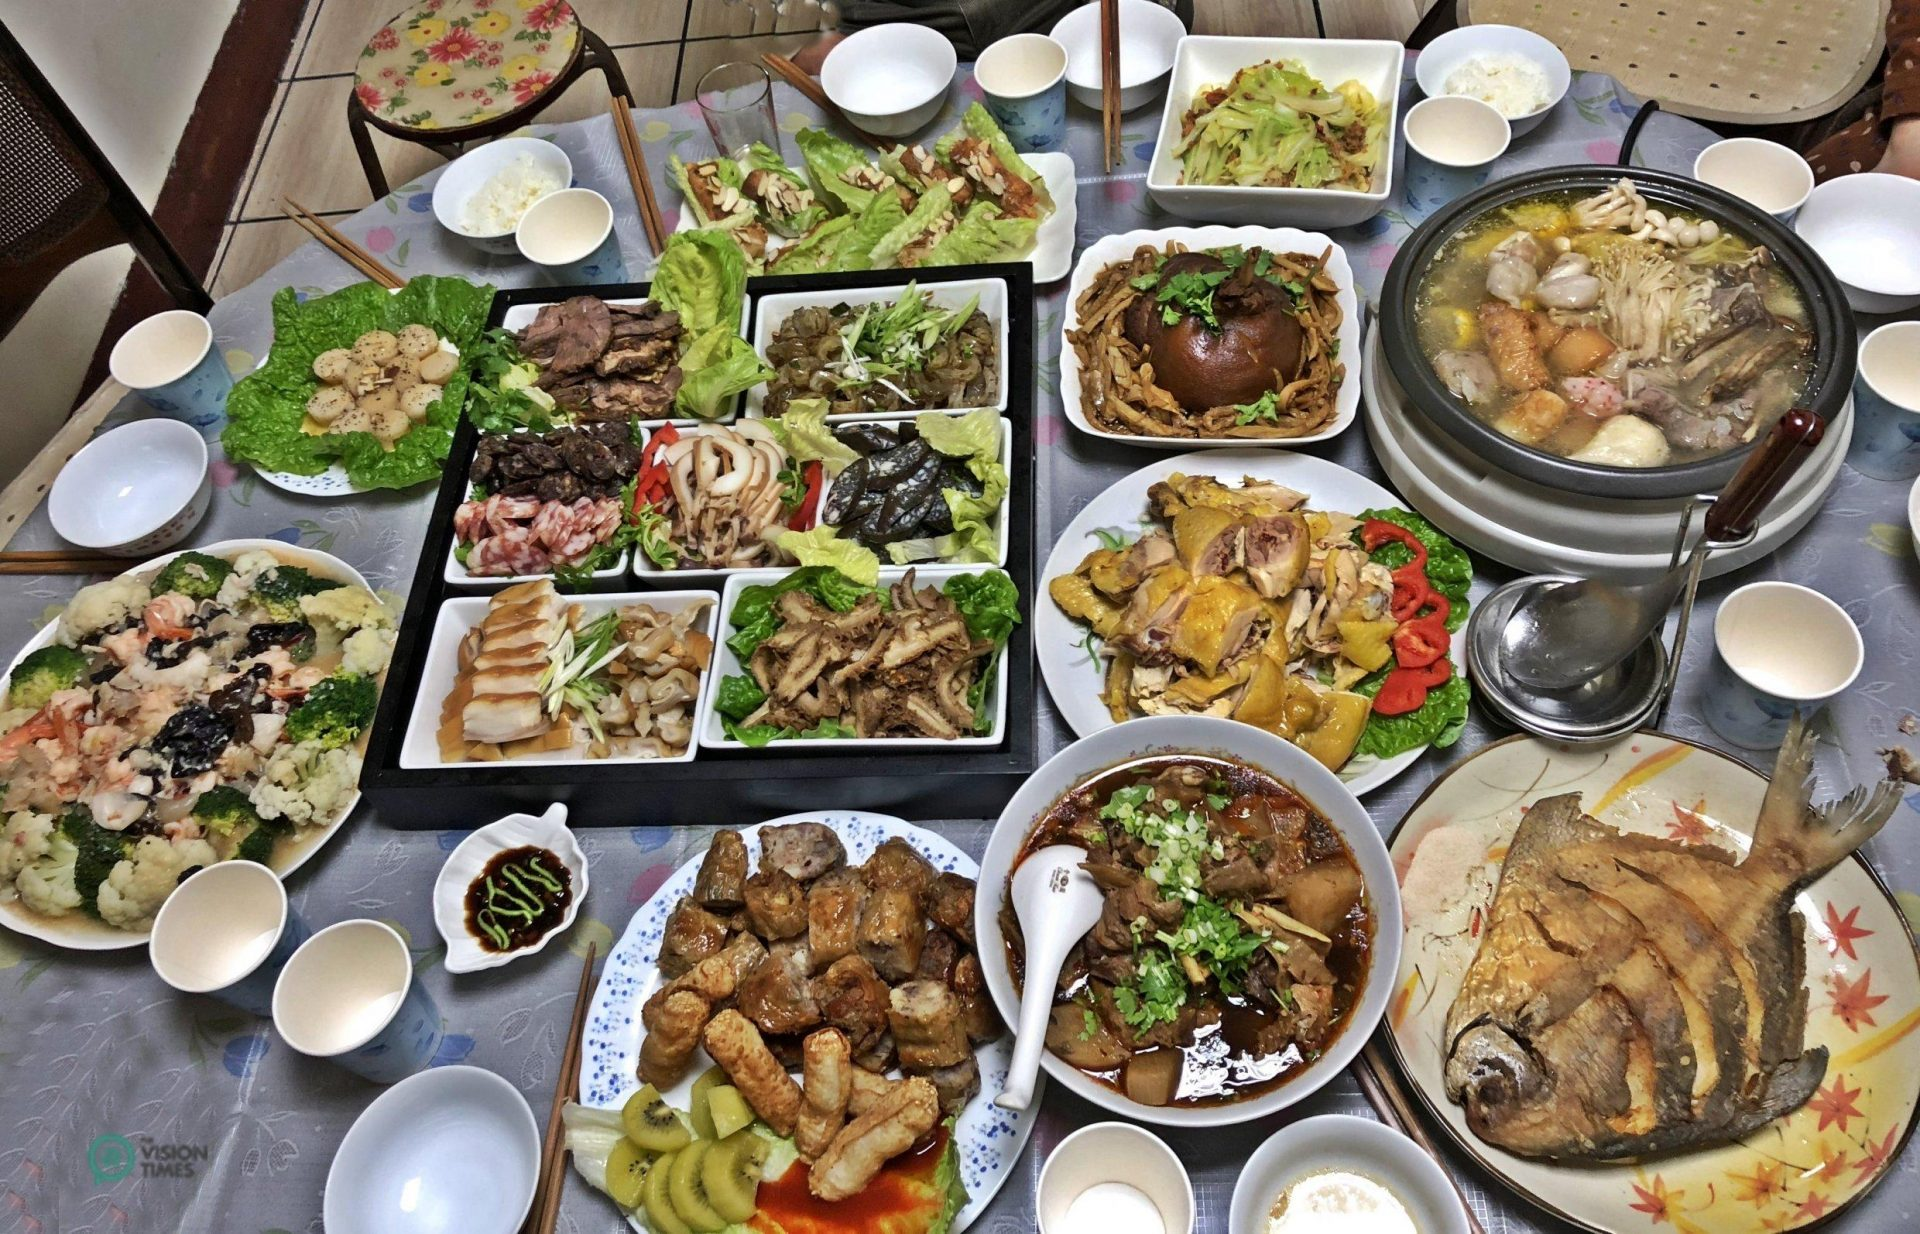 The dishes served at the reunion dinner of a family in Taiwan. (Image: Billy Shyu / Vision Times)